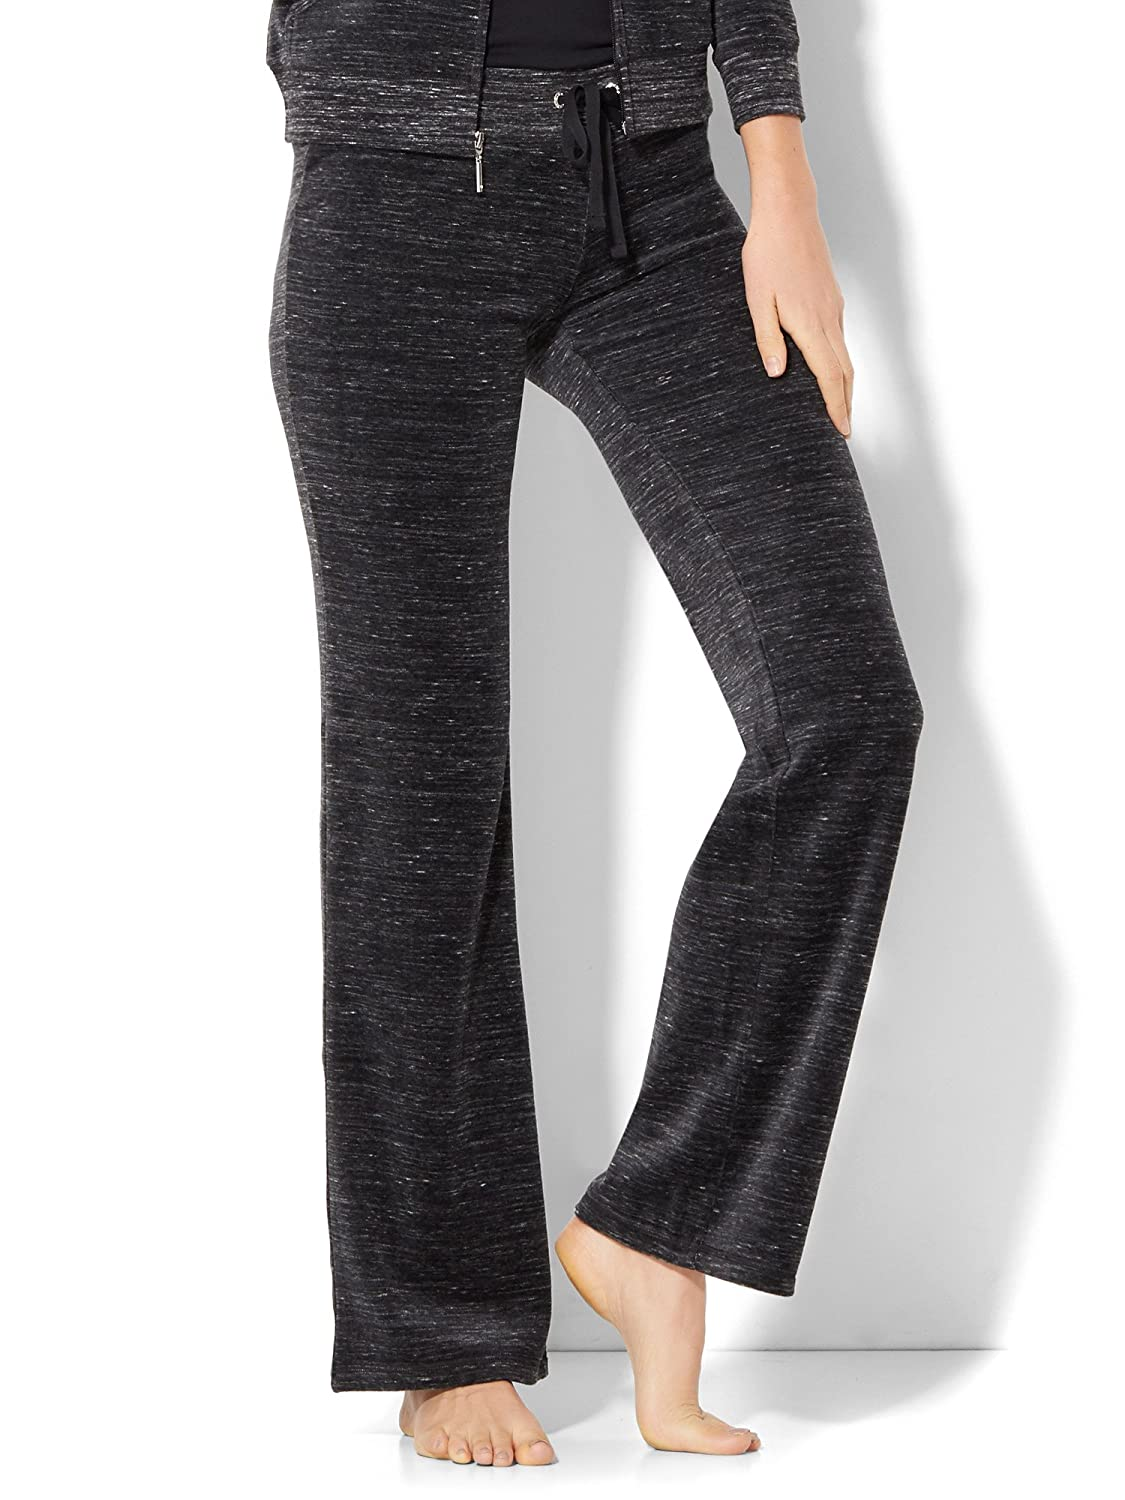 cbb7166904c New York   Co. Women s Velour Pant - Space Dye delicate - stpeters ...